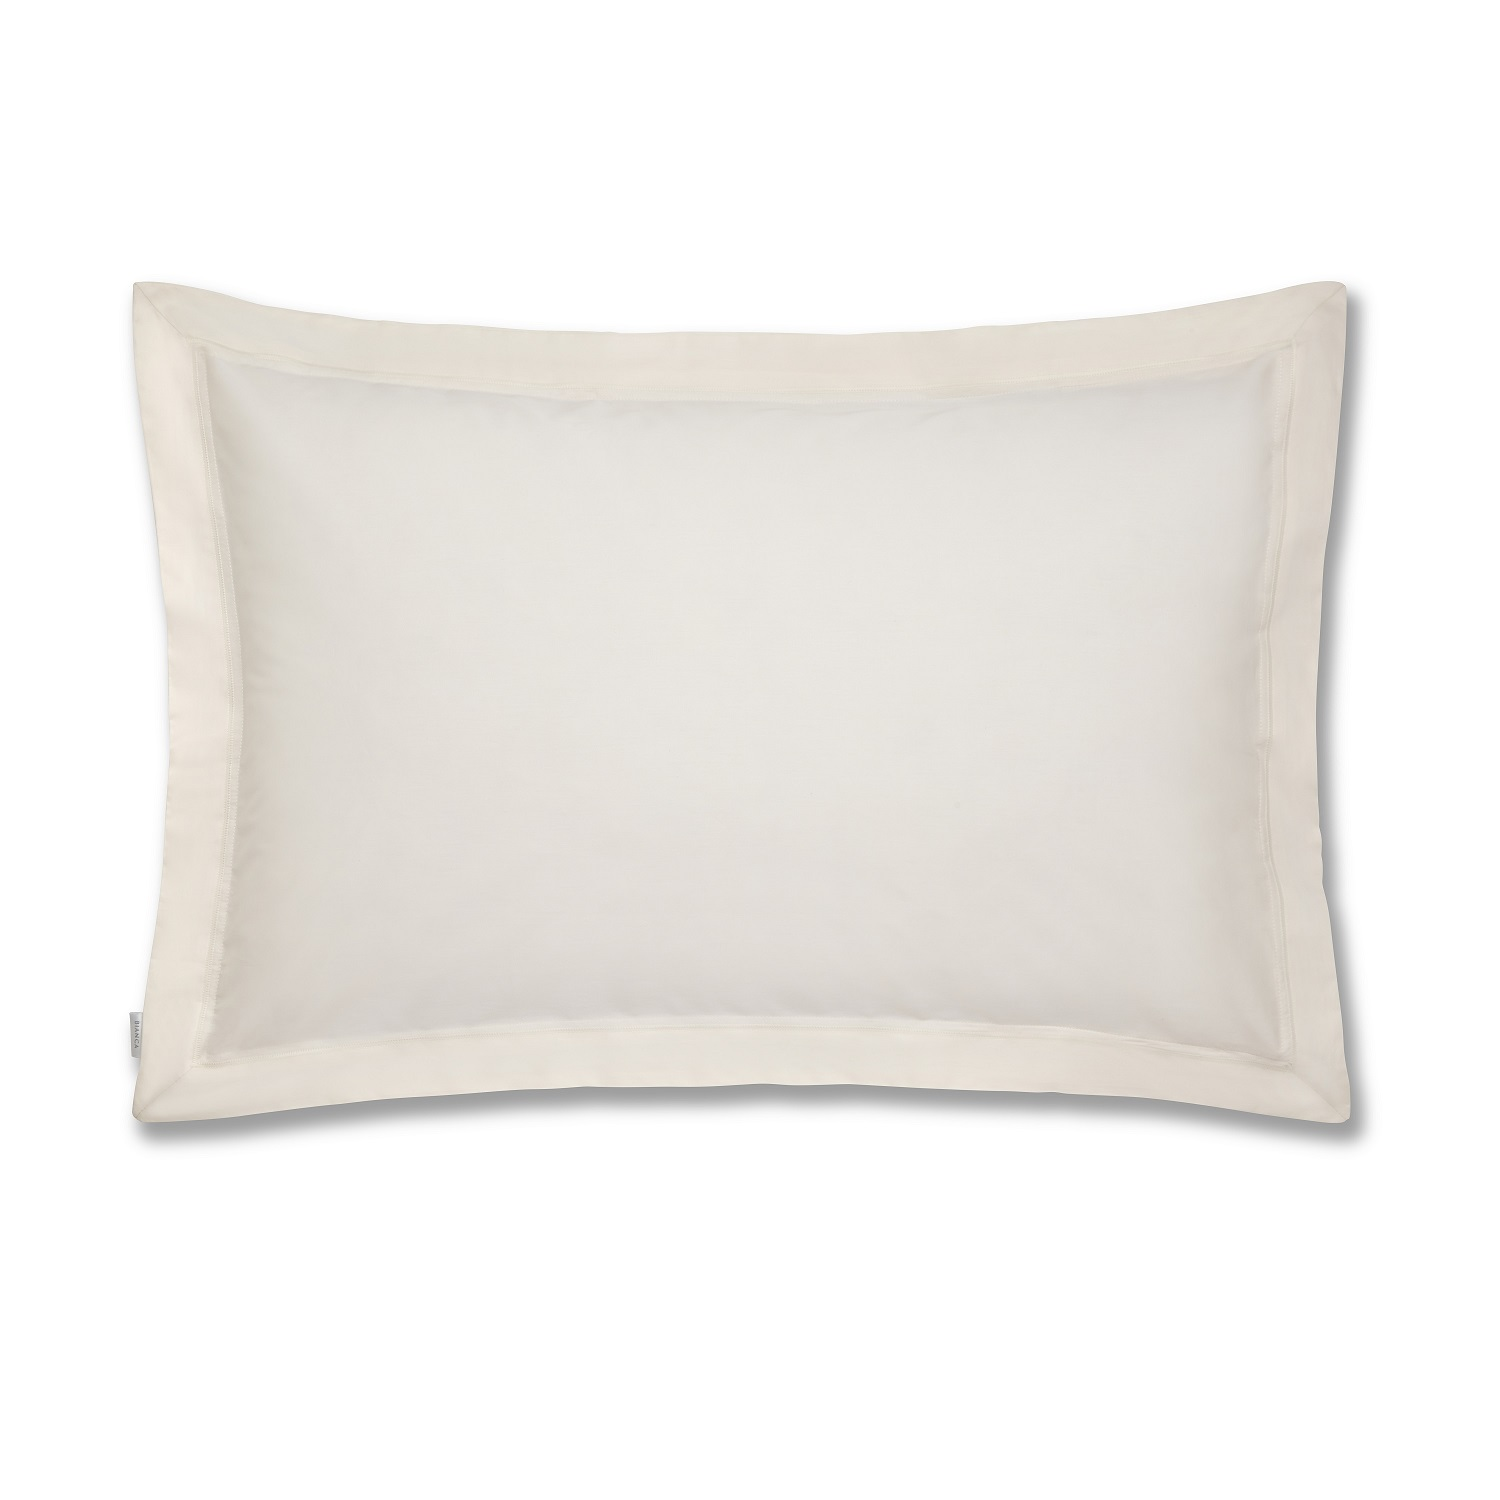 Plain Dye Cream Pillowcase OXFORD